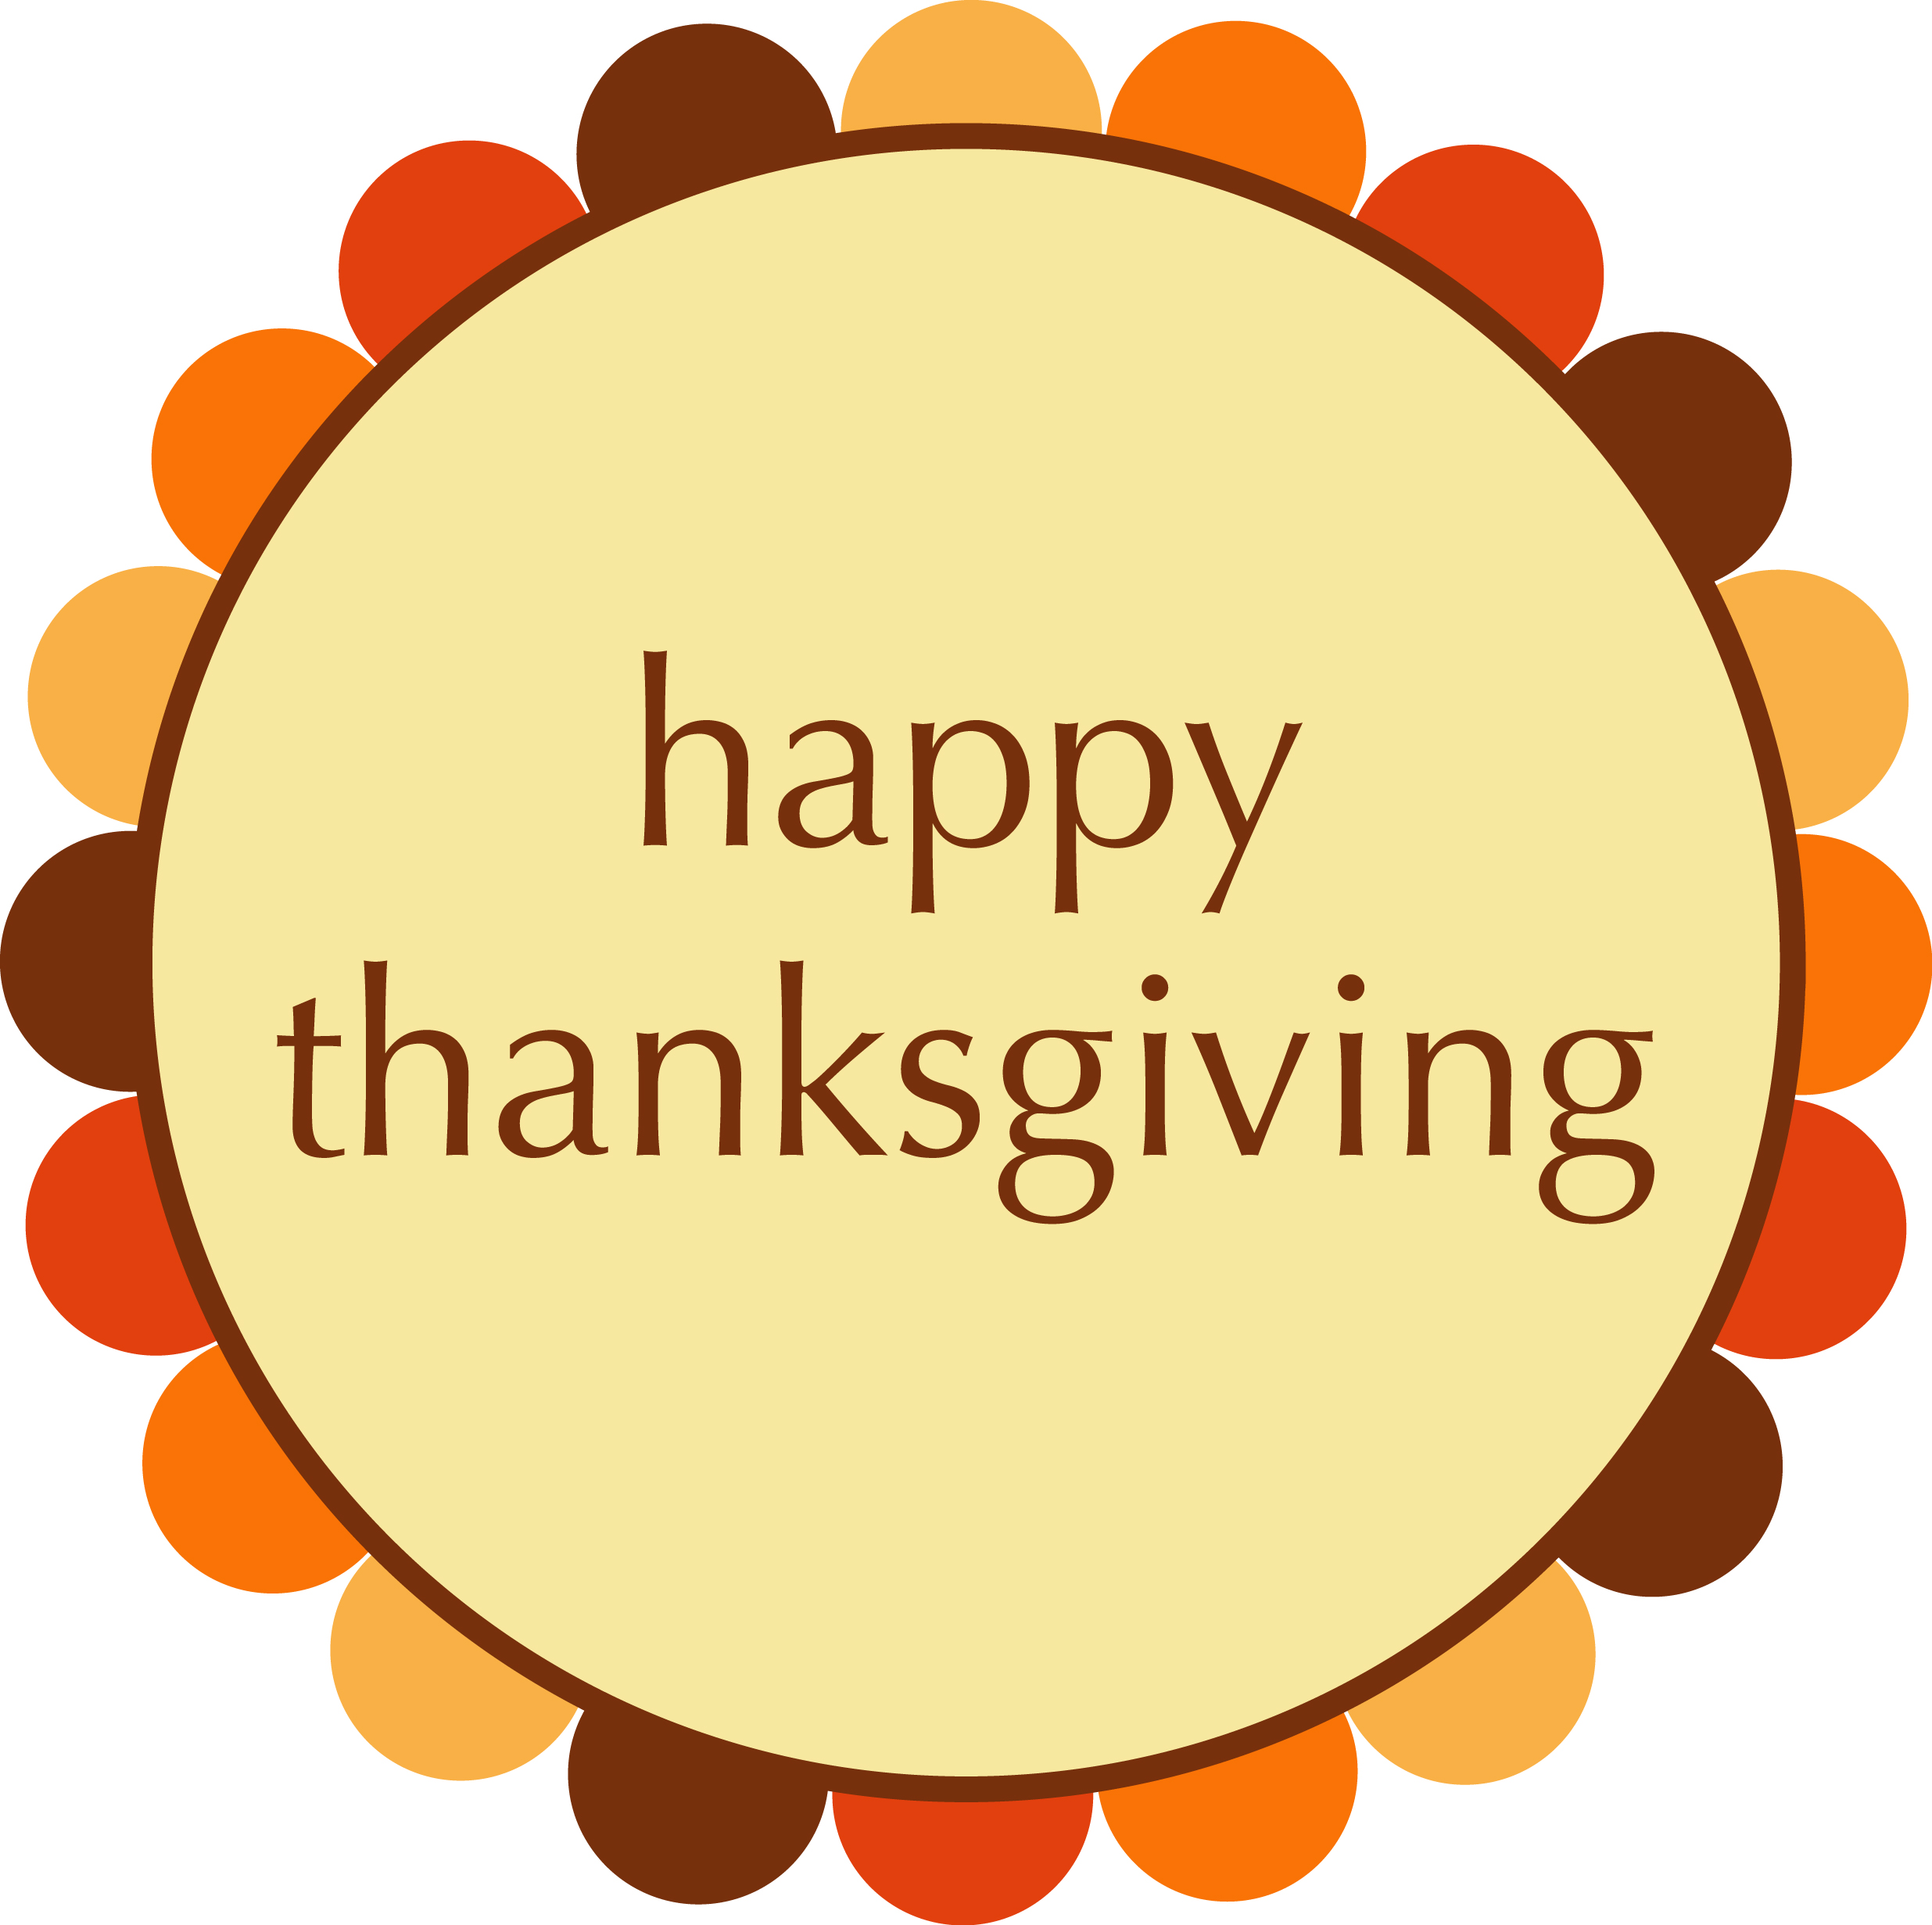 happy thanksgiving clip art - photo #33